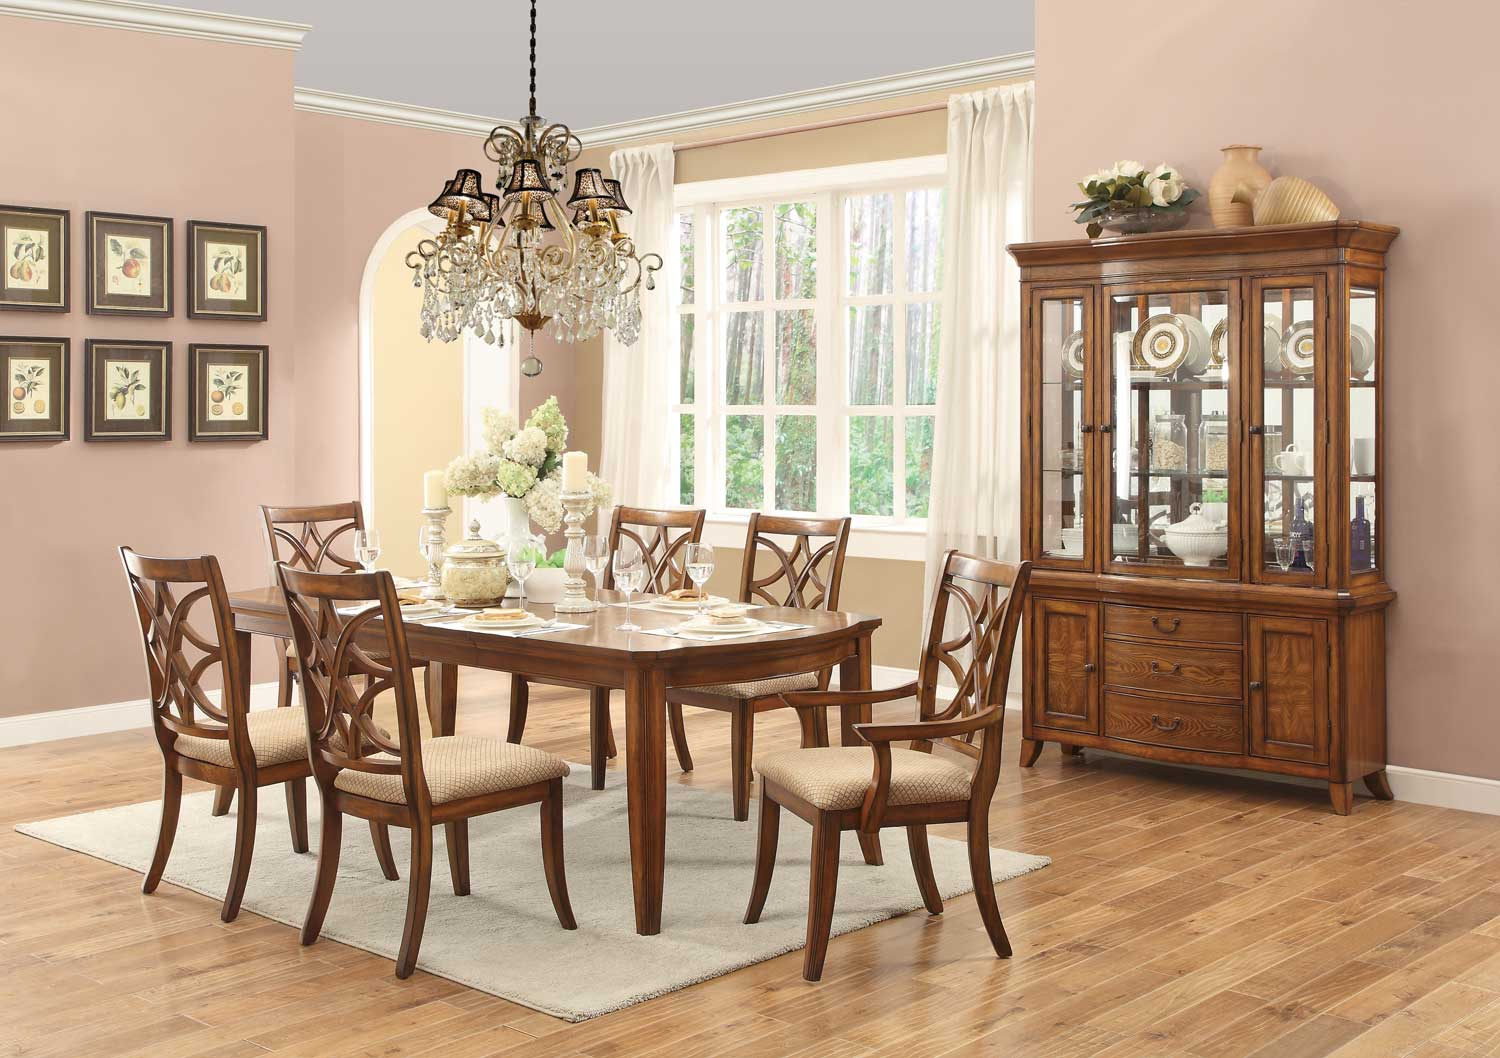 Homelegance Keegan II Leg Dining Table Set - Neutral Tone Fabric - Oak